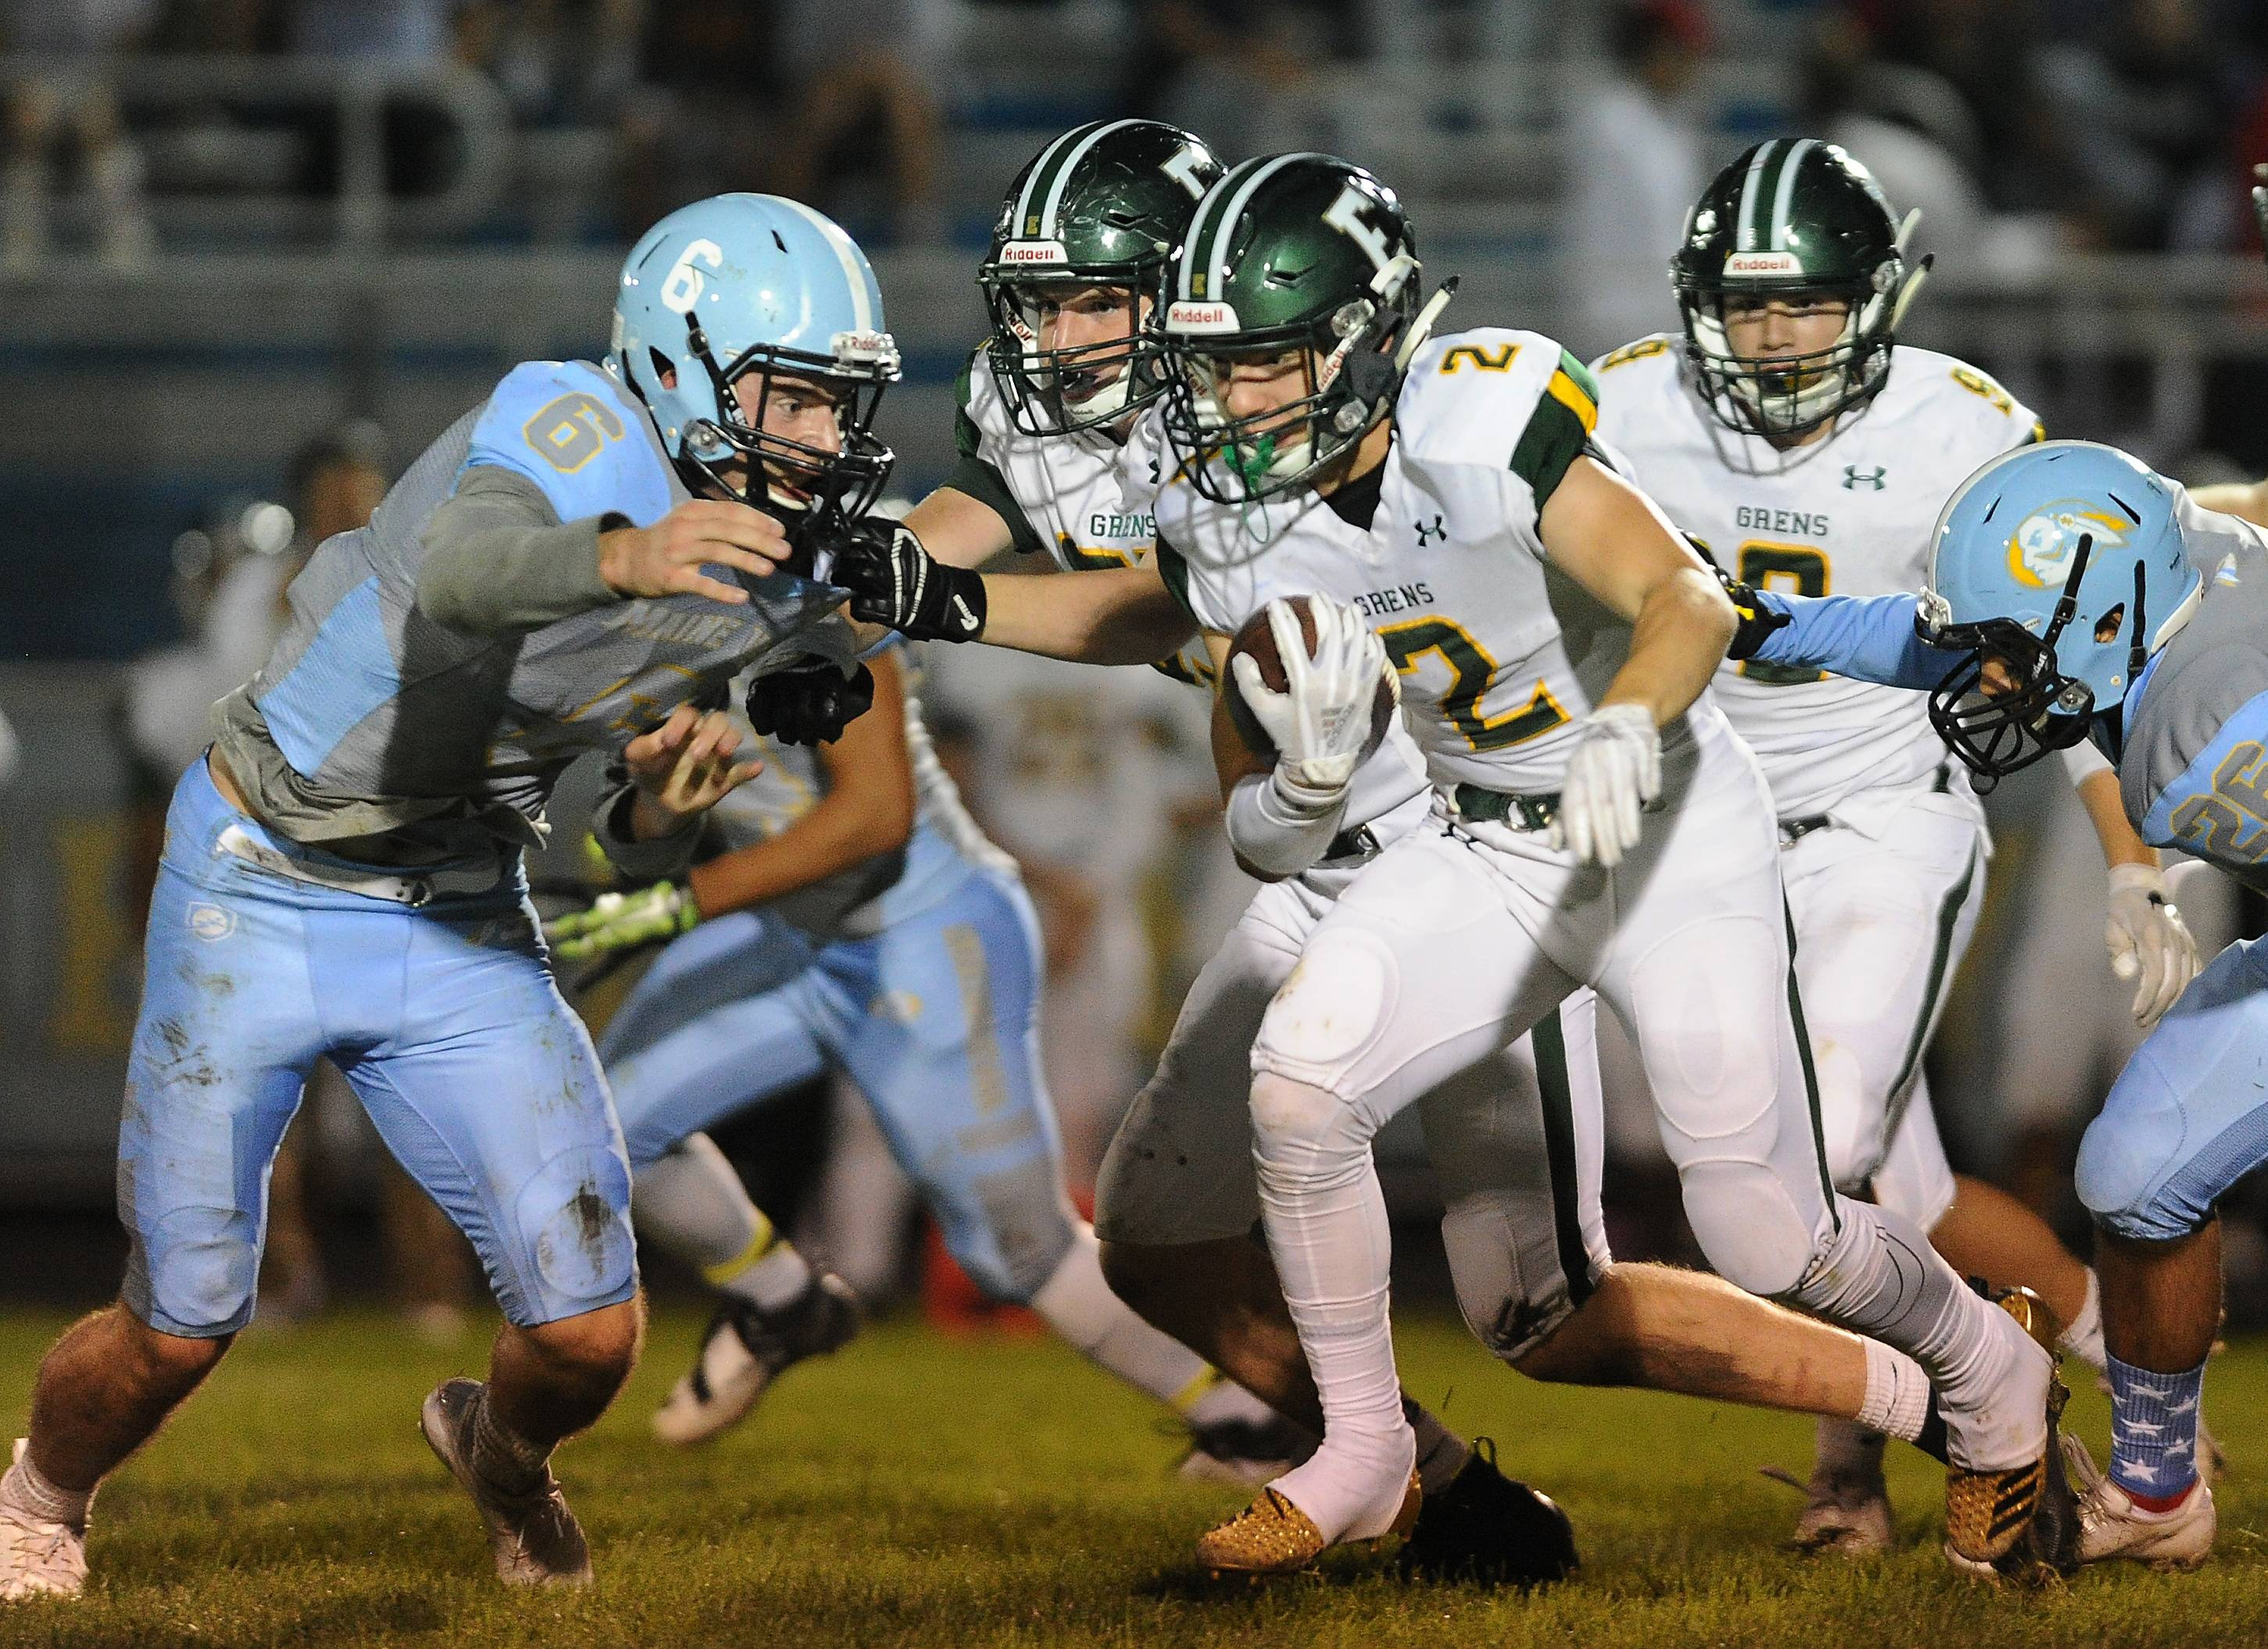 Elk Grove's Ian Ridge adds a 30-yard punt return in the second quarter to his highlight reel as Maine West's Ely Grimmer closes the gap in the varsity matchup at Maine West on Friday.